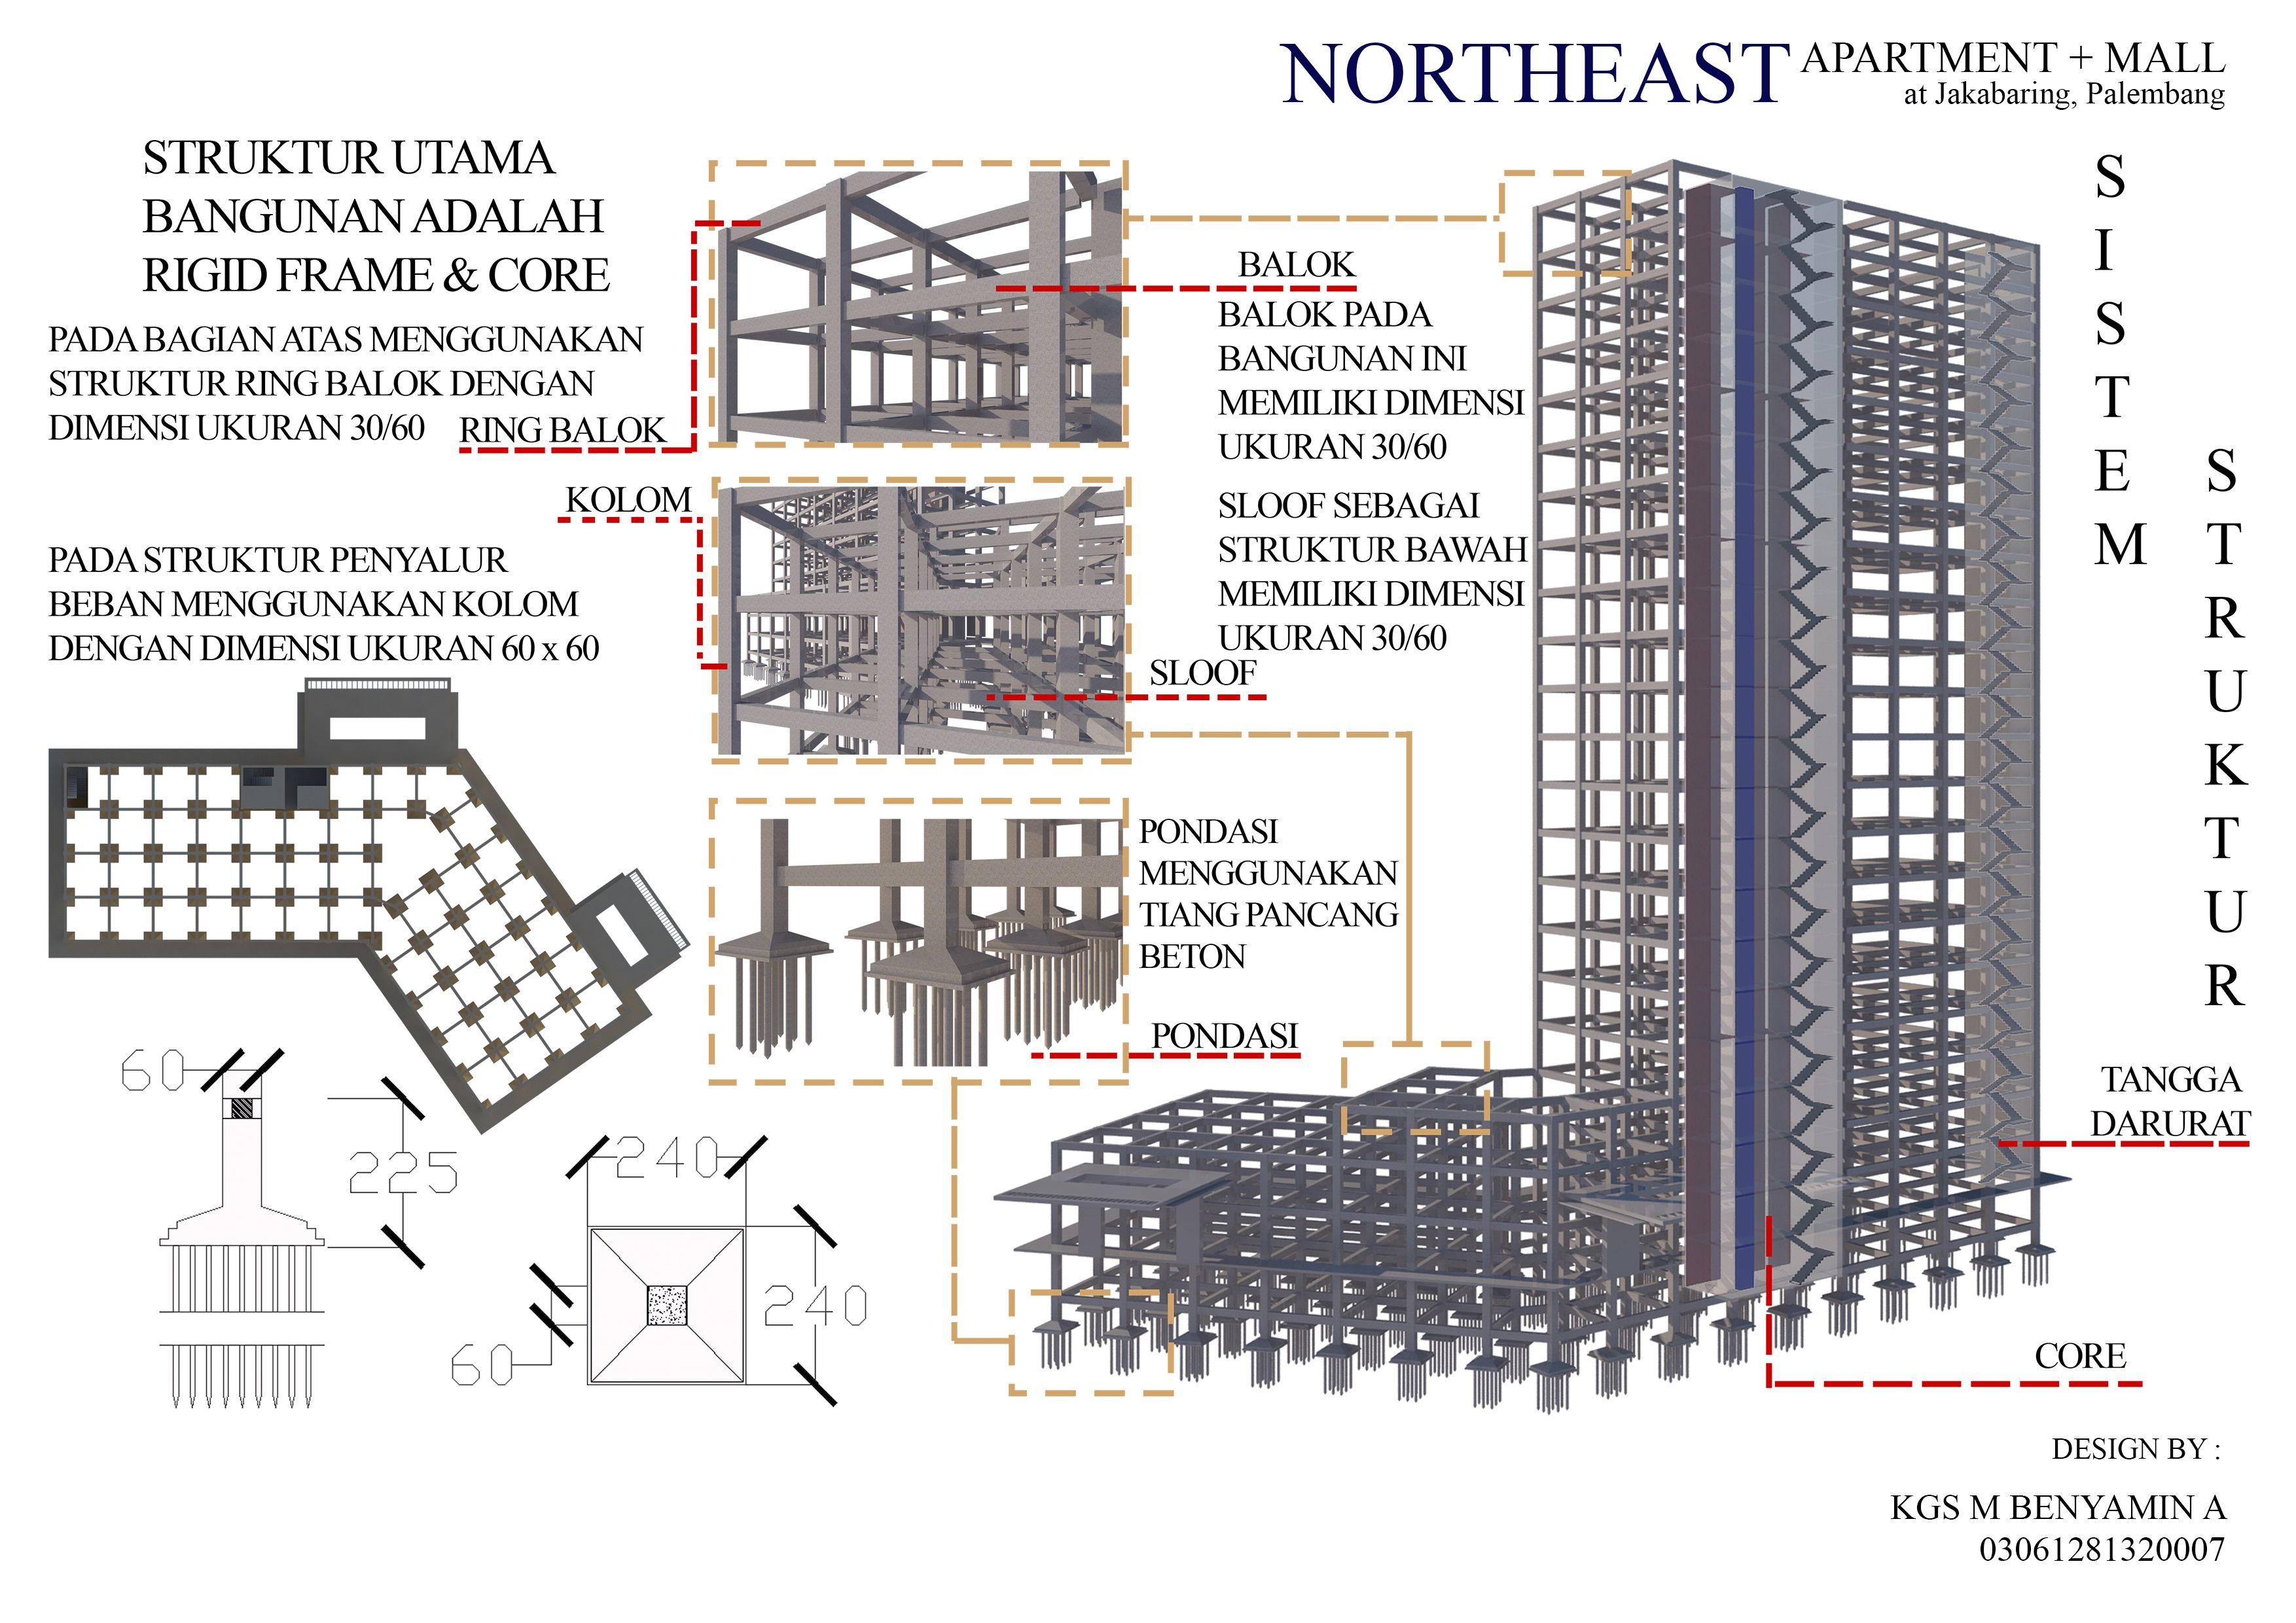 Pin by kiagus ben on northeast apartmenthematic mall studio 7 pin by kiagus ben on northeast apartmenthematic mall studio 7 design pinterest mall ccuart Gallery